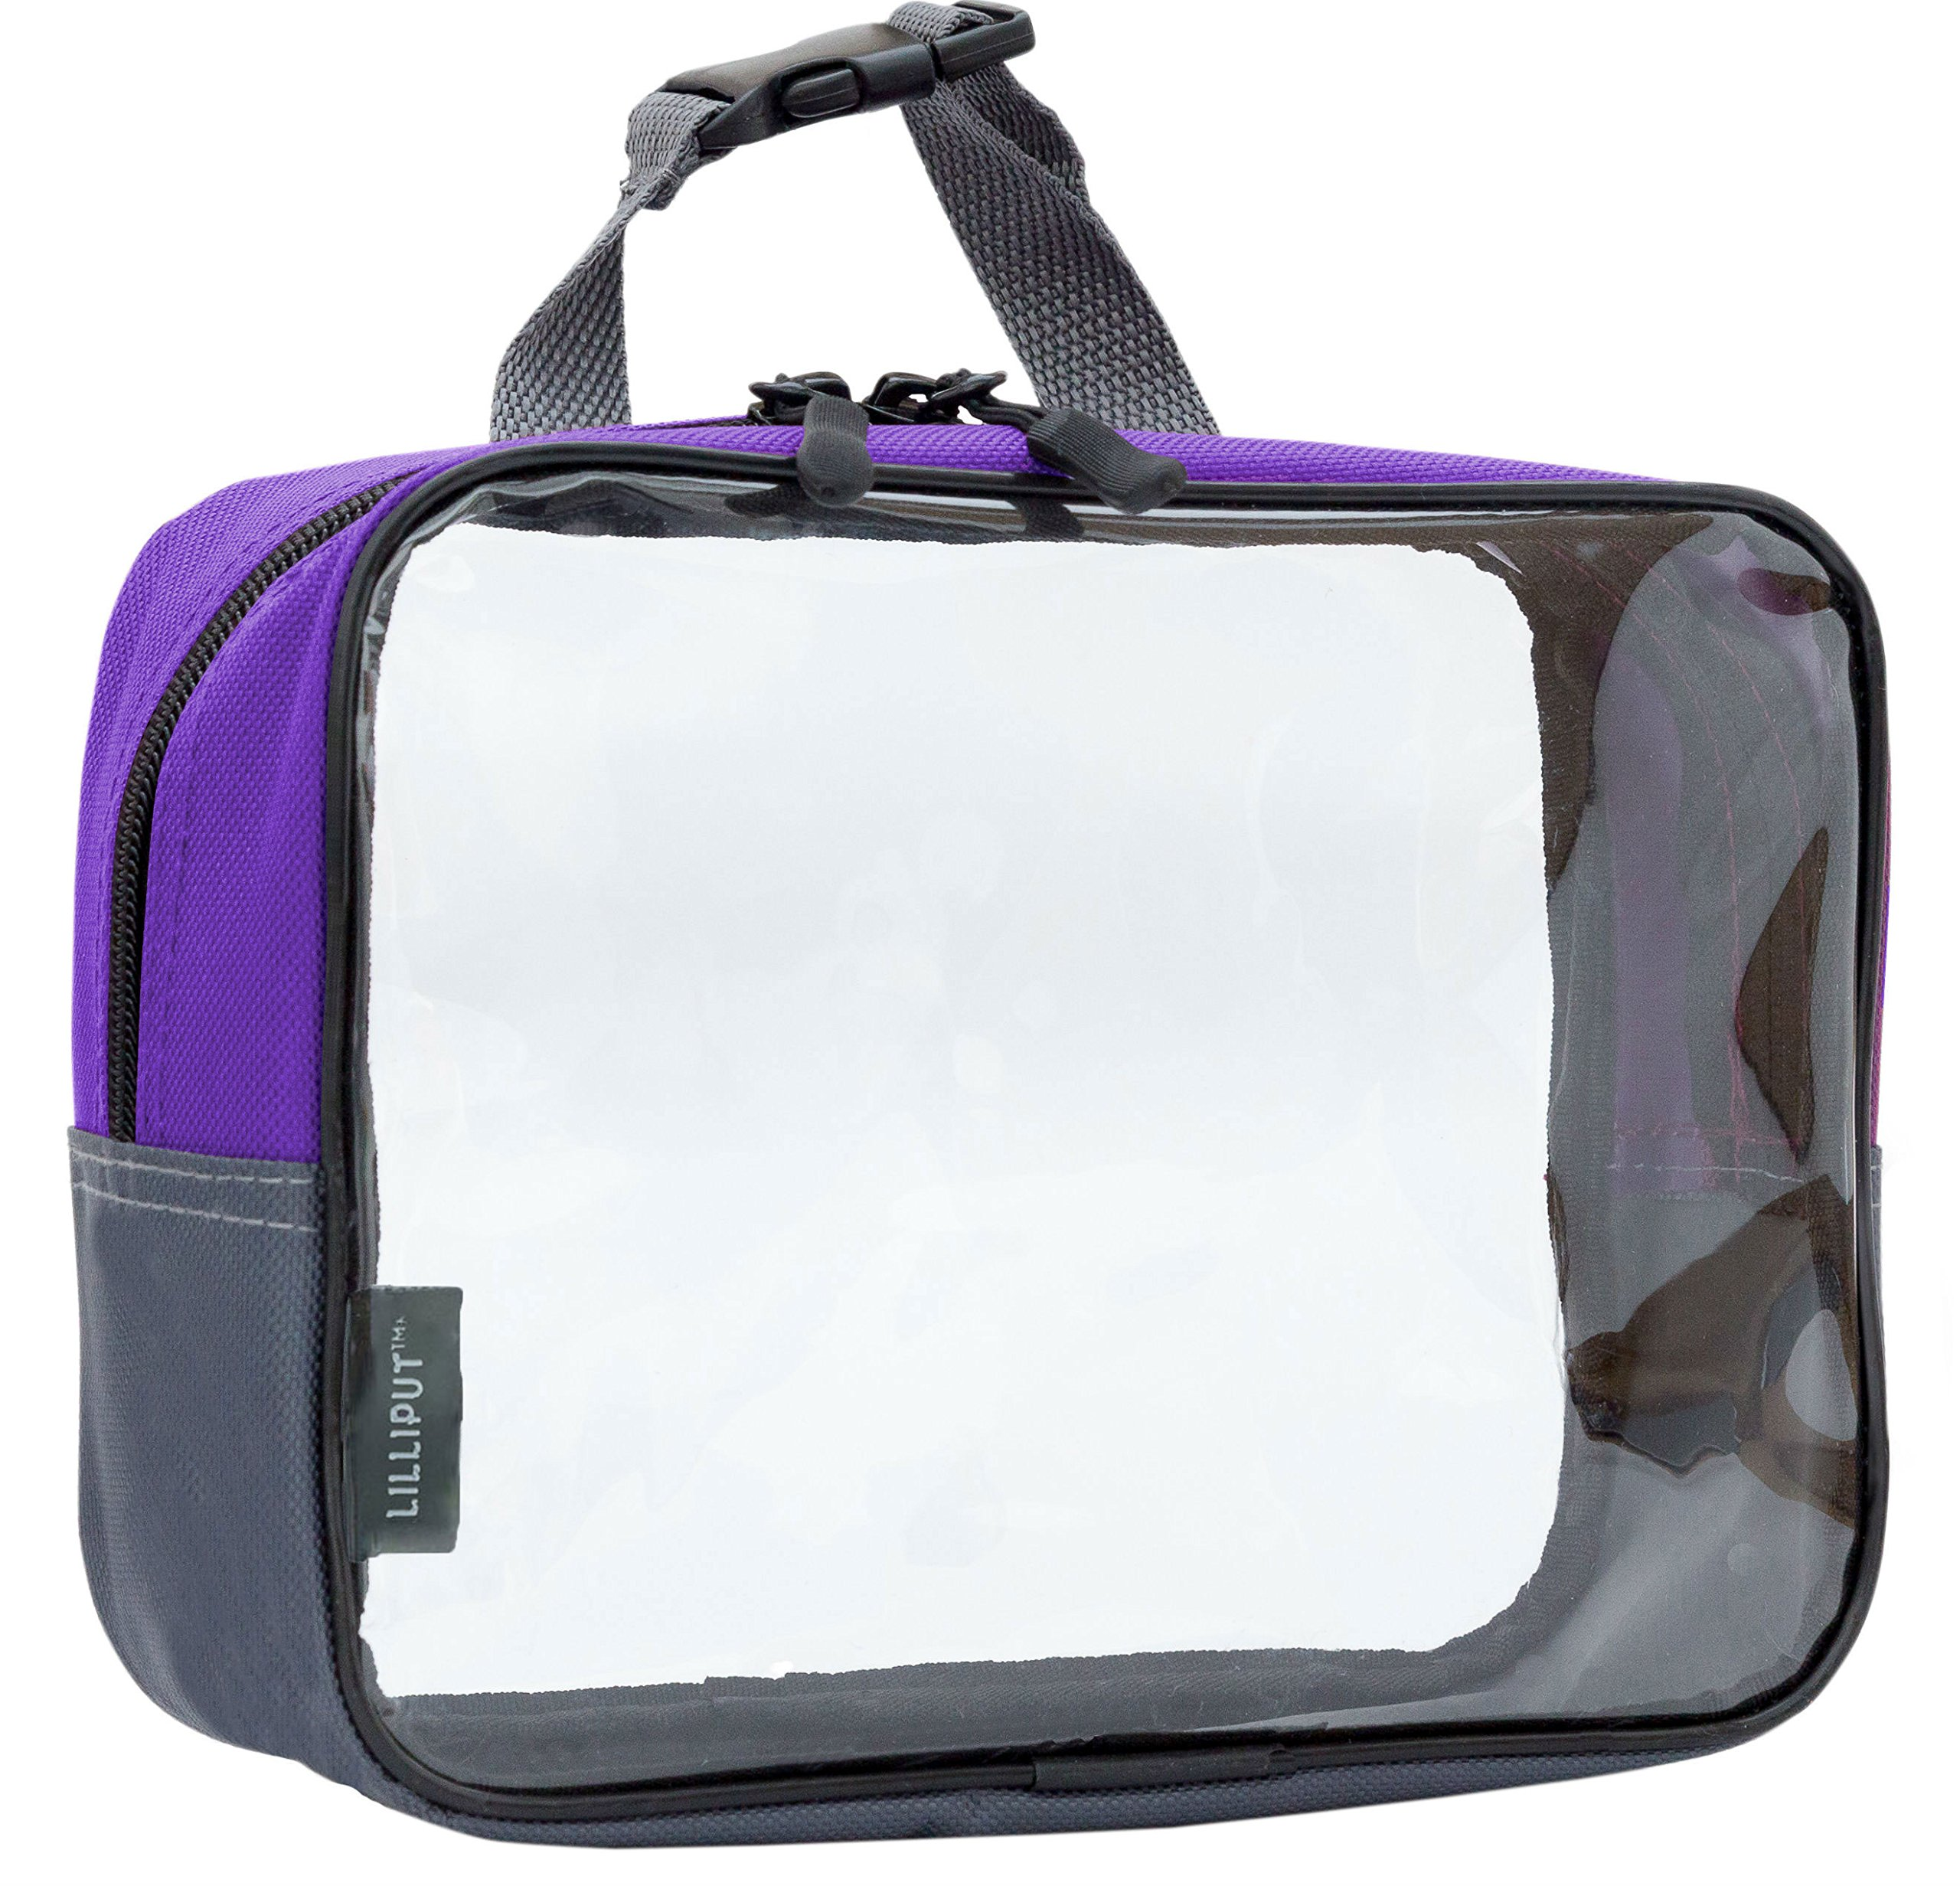 Clear Travel Toiletry Bag, Cosmetic Bag, Quart Sized Packing Organizer (Purple)